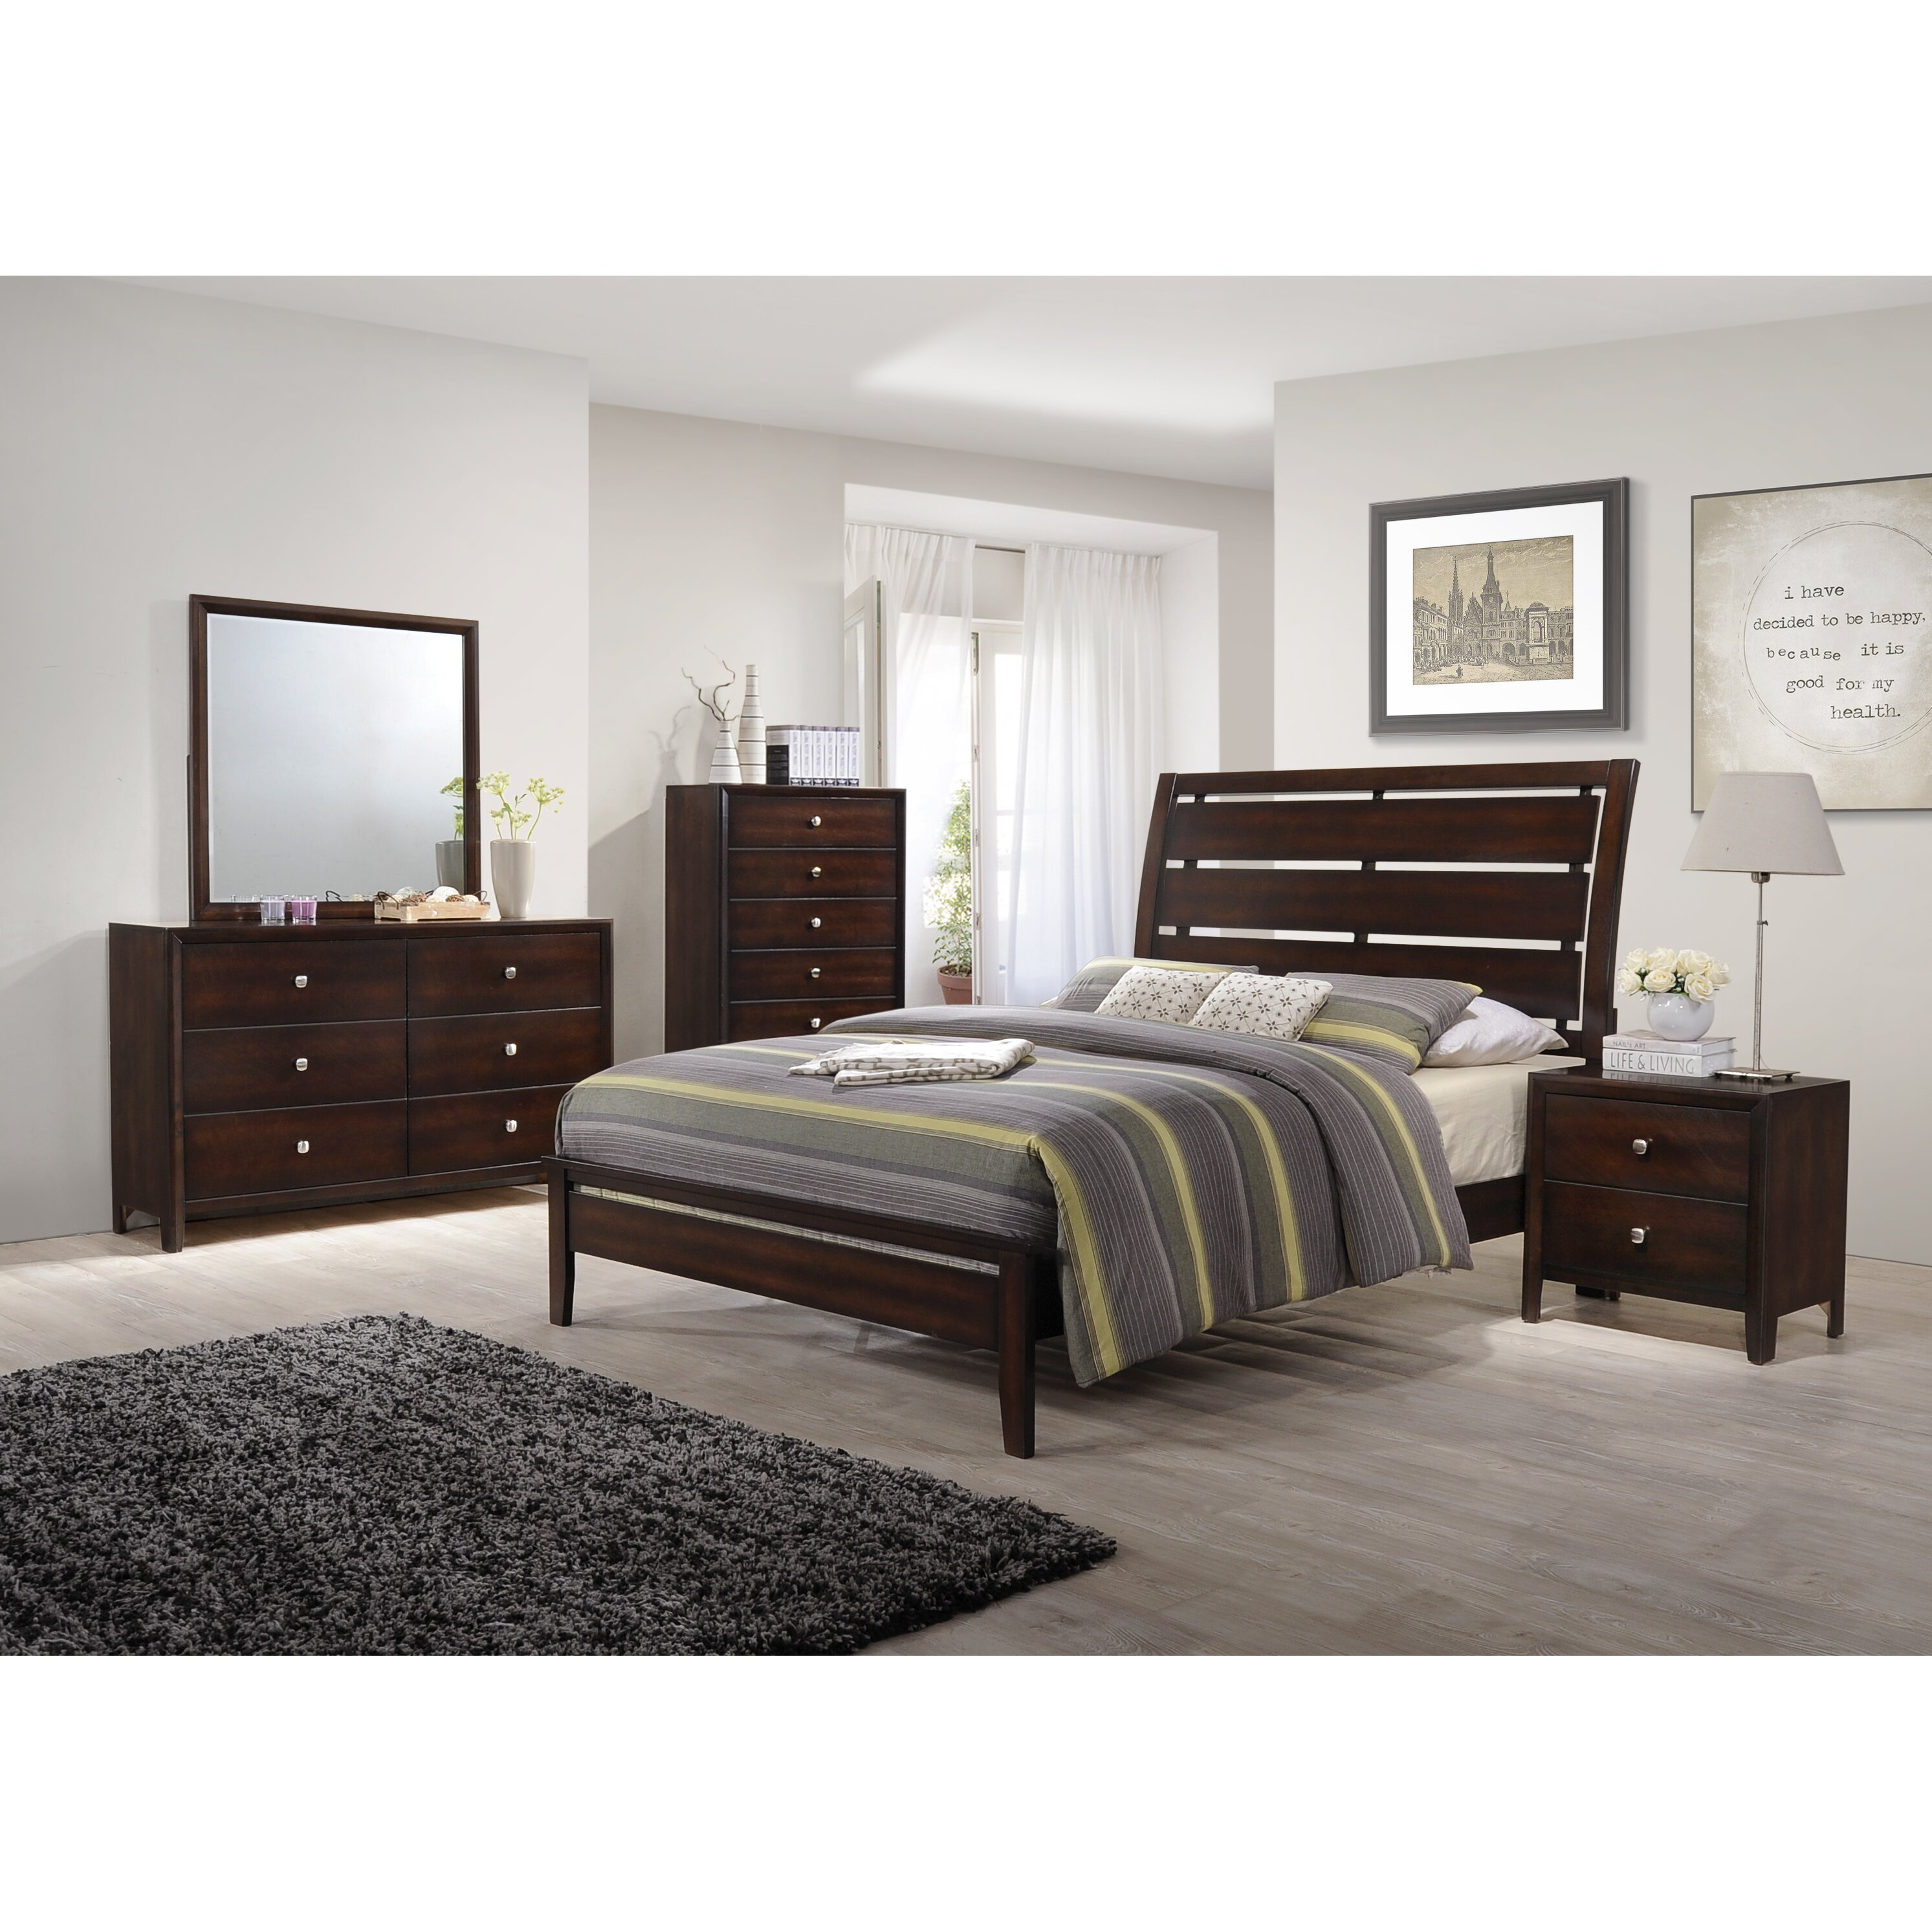 Simmons Bedroom Furniture Latitude Run Simmons Casegoods Chara 6 Drawer Dresser Reviews